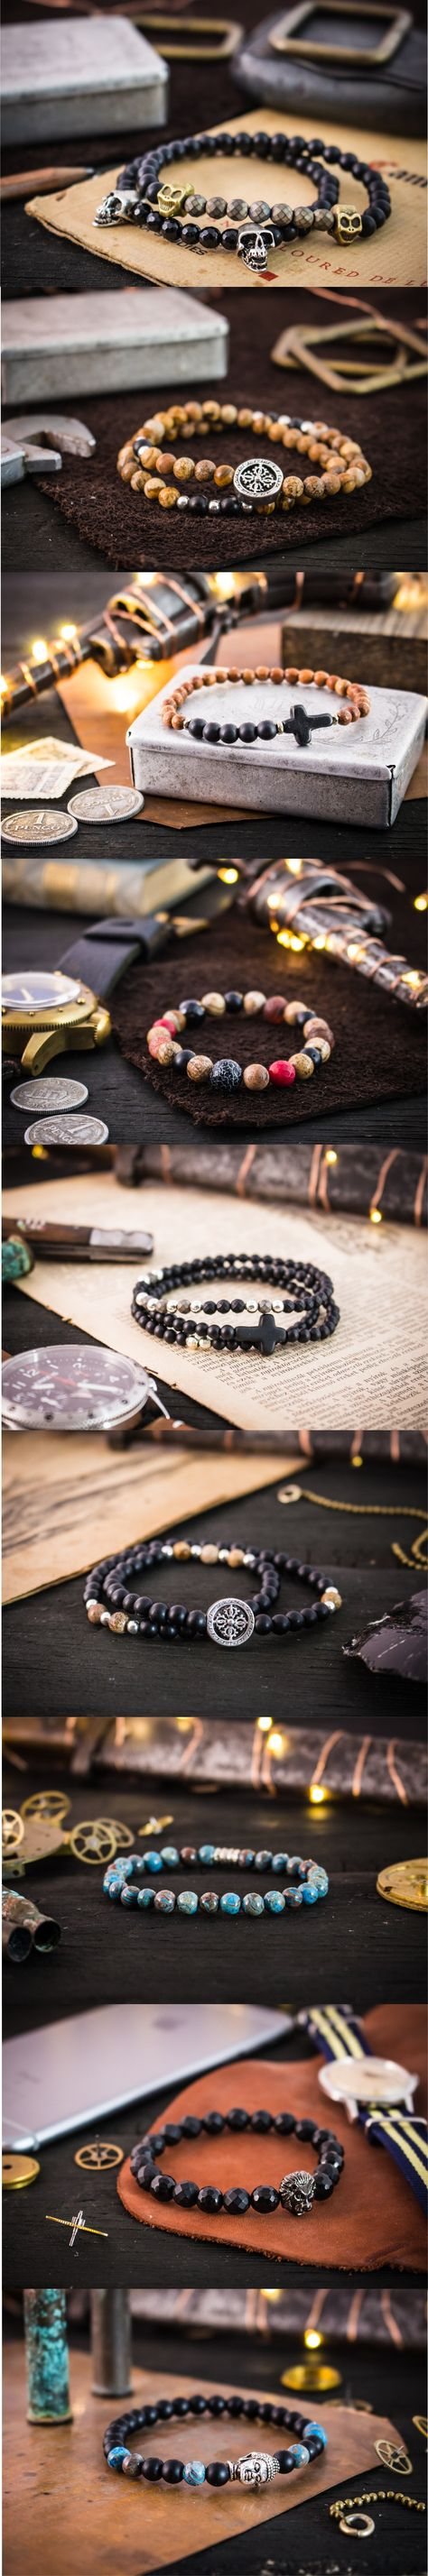 Made to order gemstone beaded bracelets for men. | #strapsandbracelets |